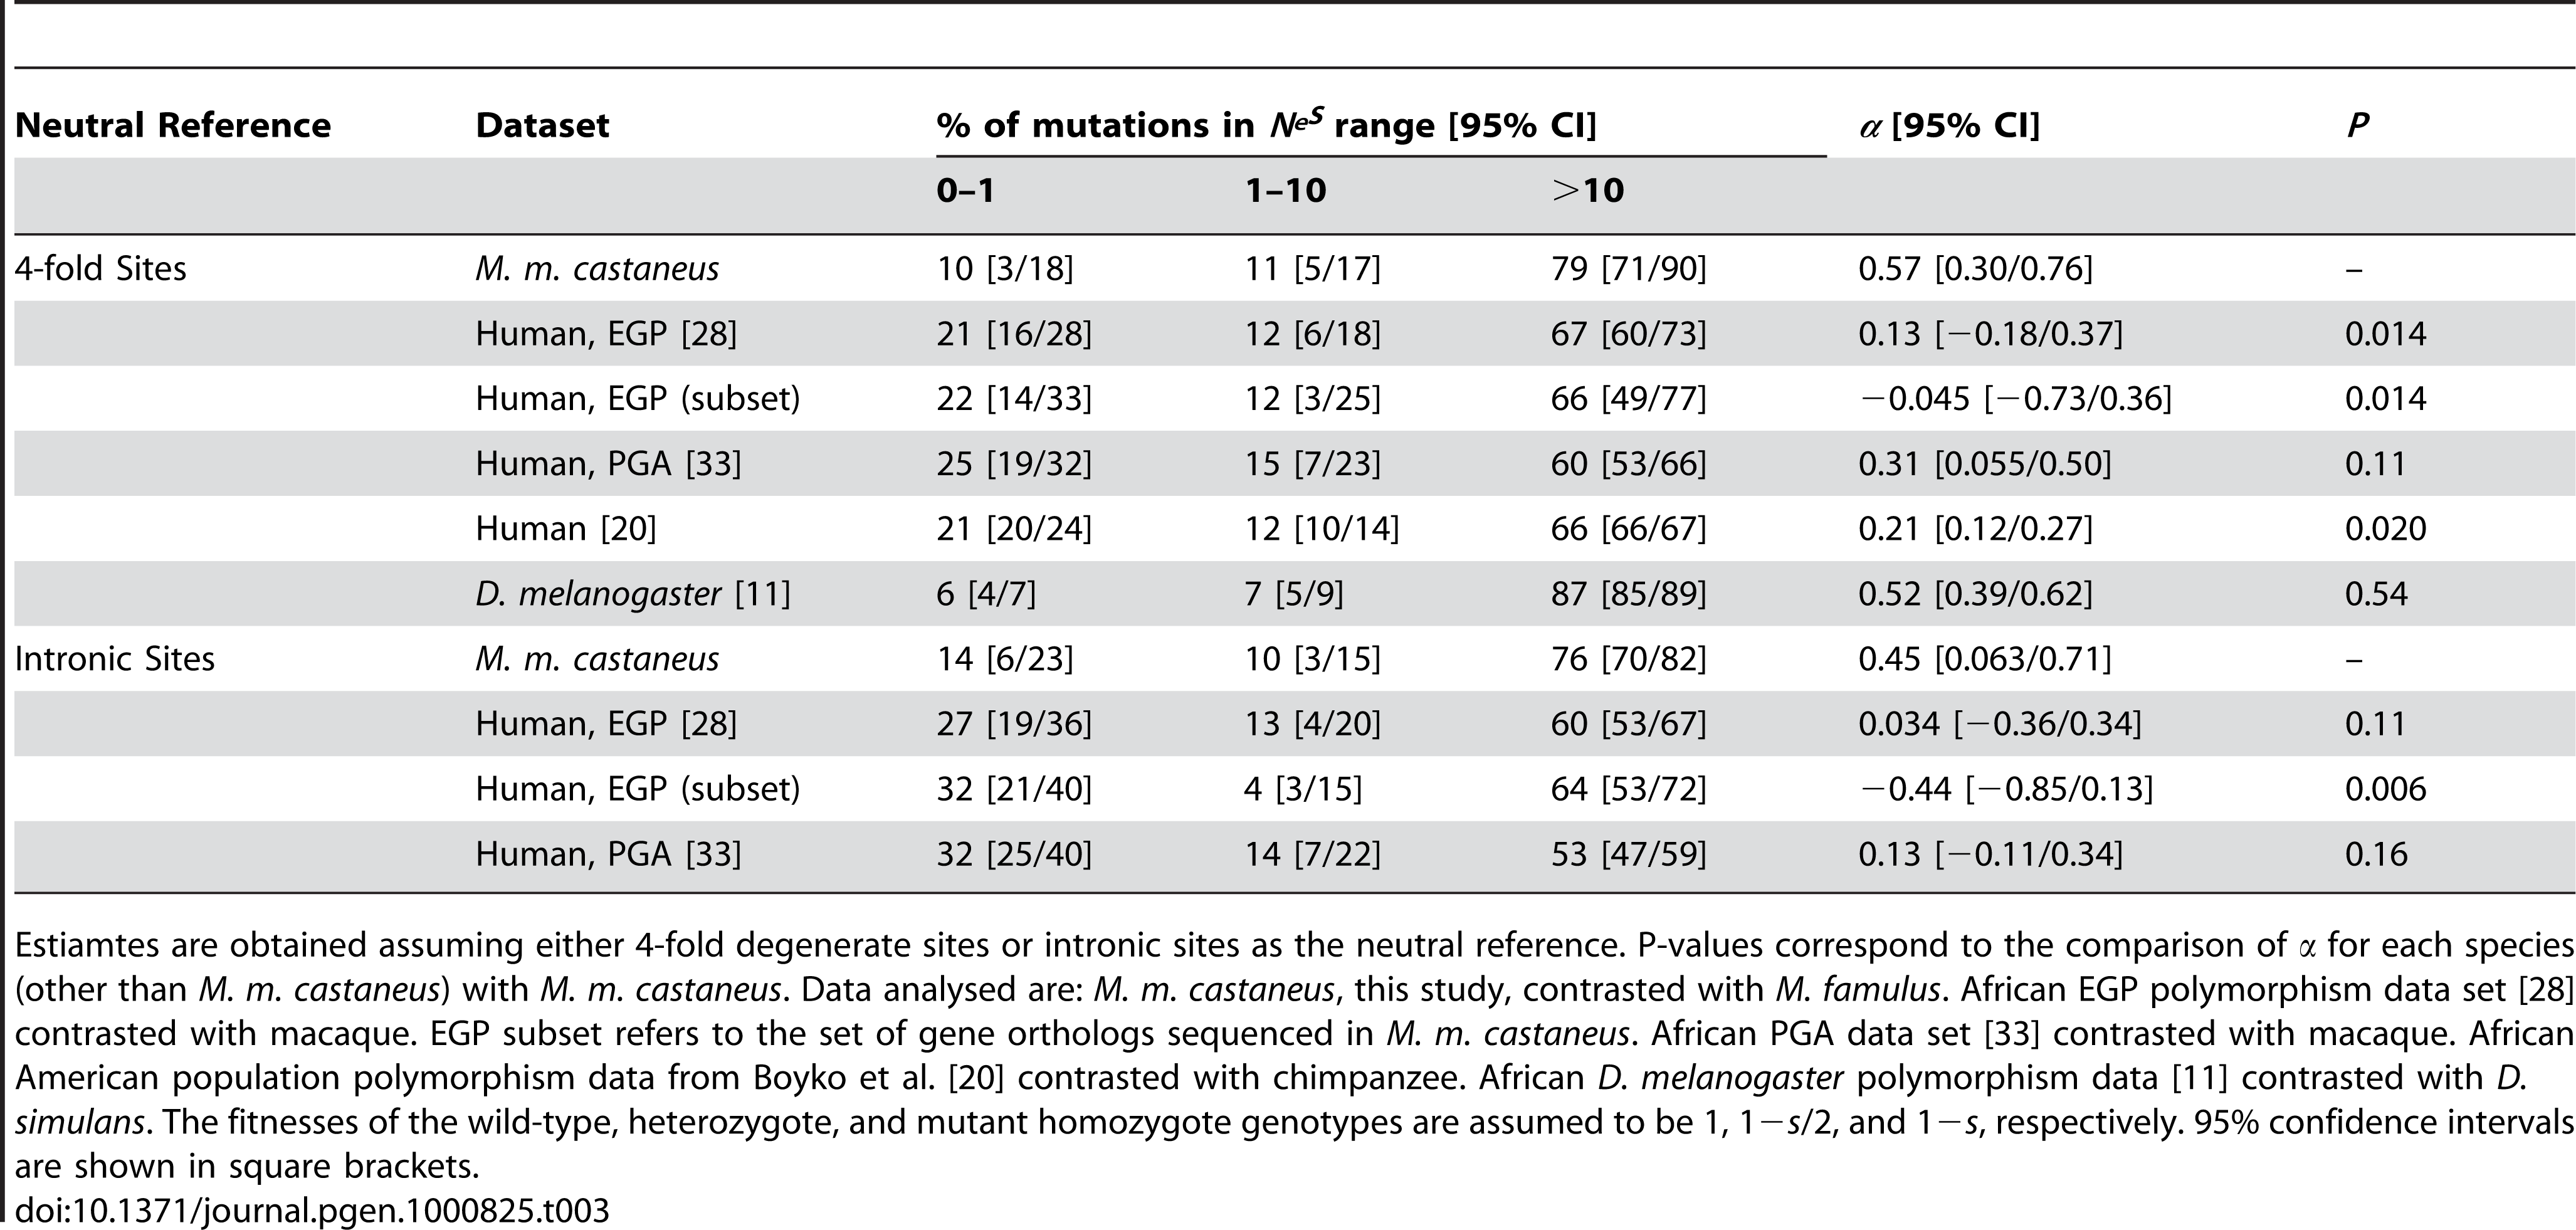 Estimated percentages of amino acid mutations in different <i>N<sub>e</sub>s</i> ranges and estimates of <i>α</i>, the fraction of substitutions driven to fixation by positive selection.